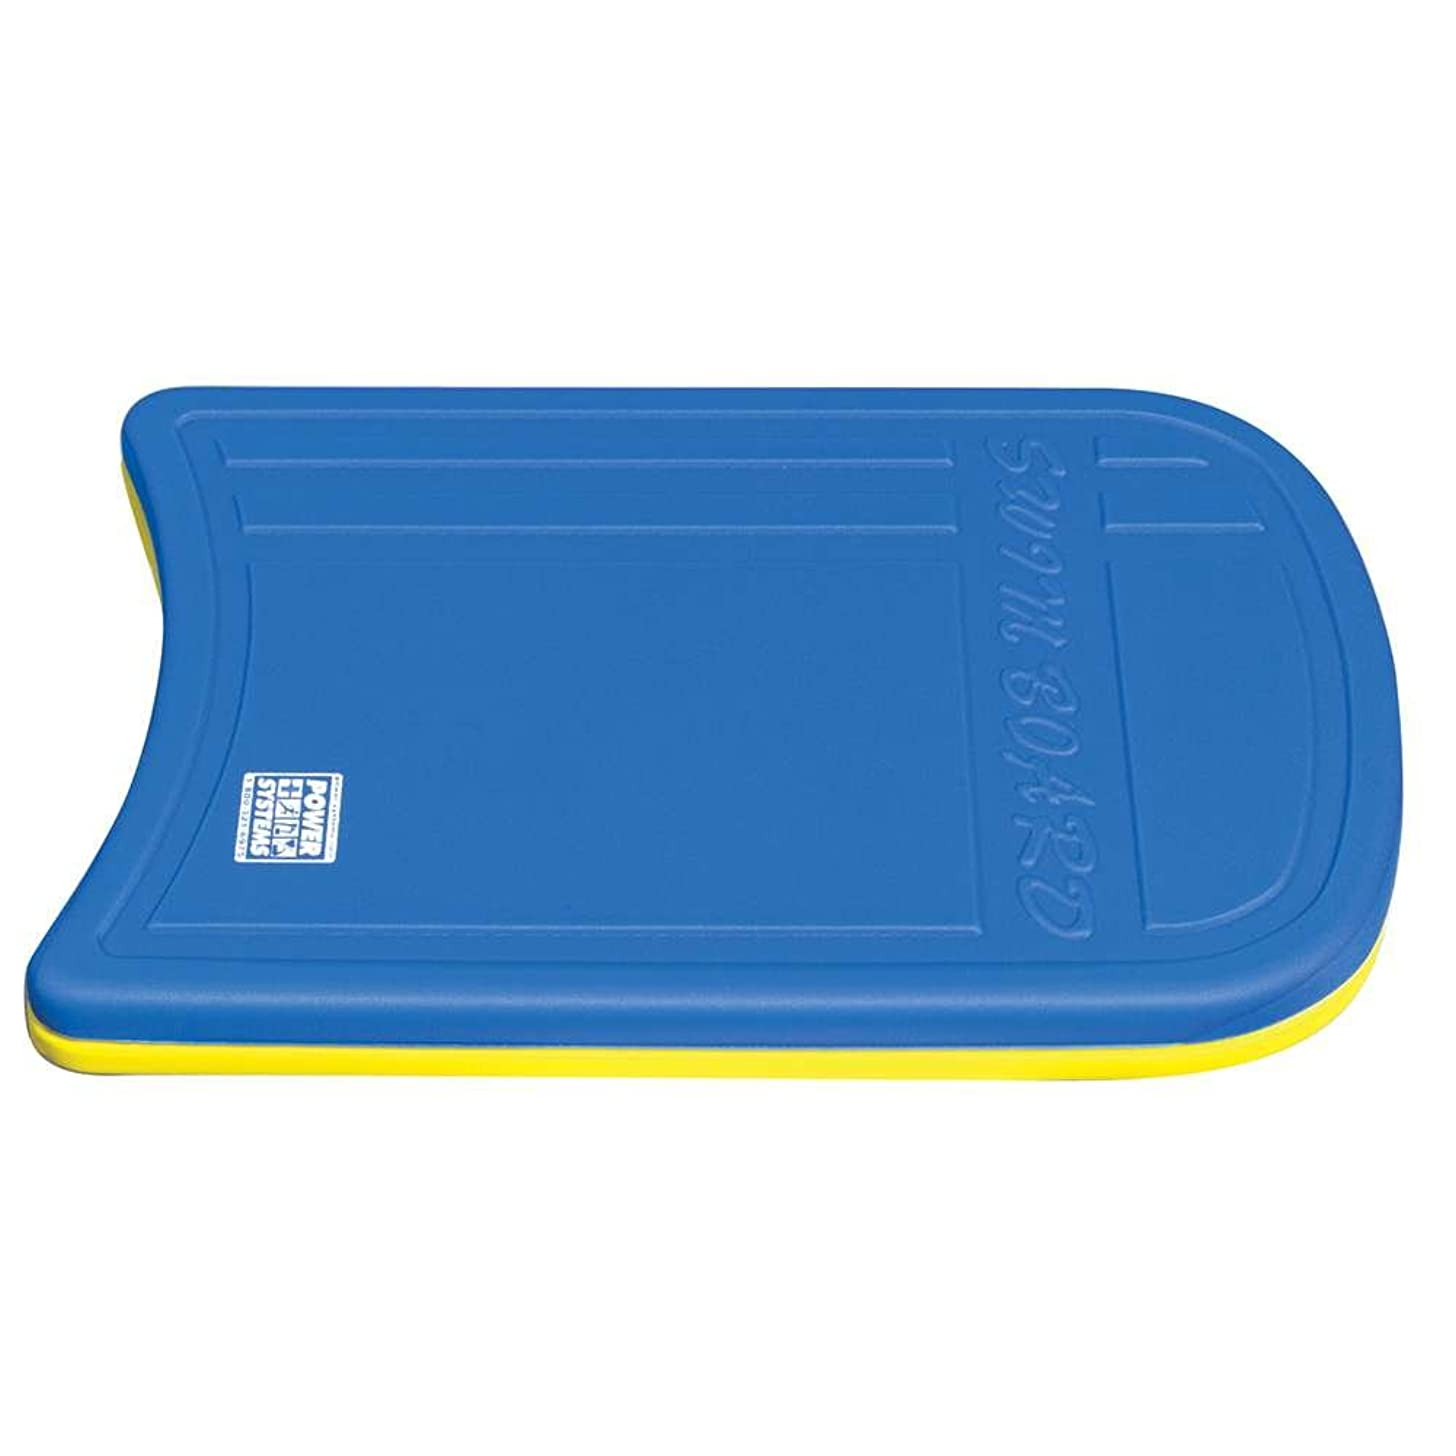 Power Systems Kickboard for Swim Fitness Training, 19 x 12 x 1.5 Inches, Blue/Yellow (86690)